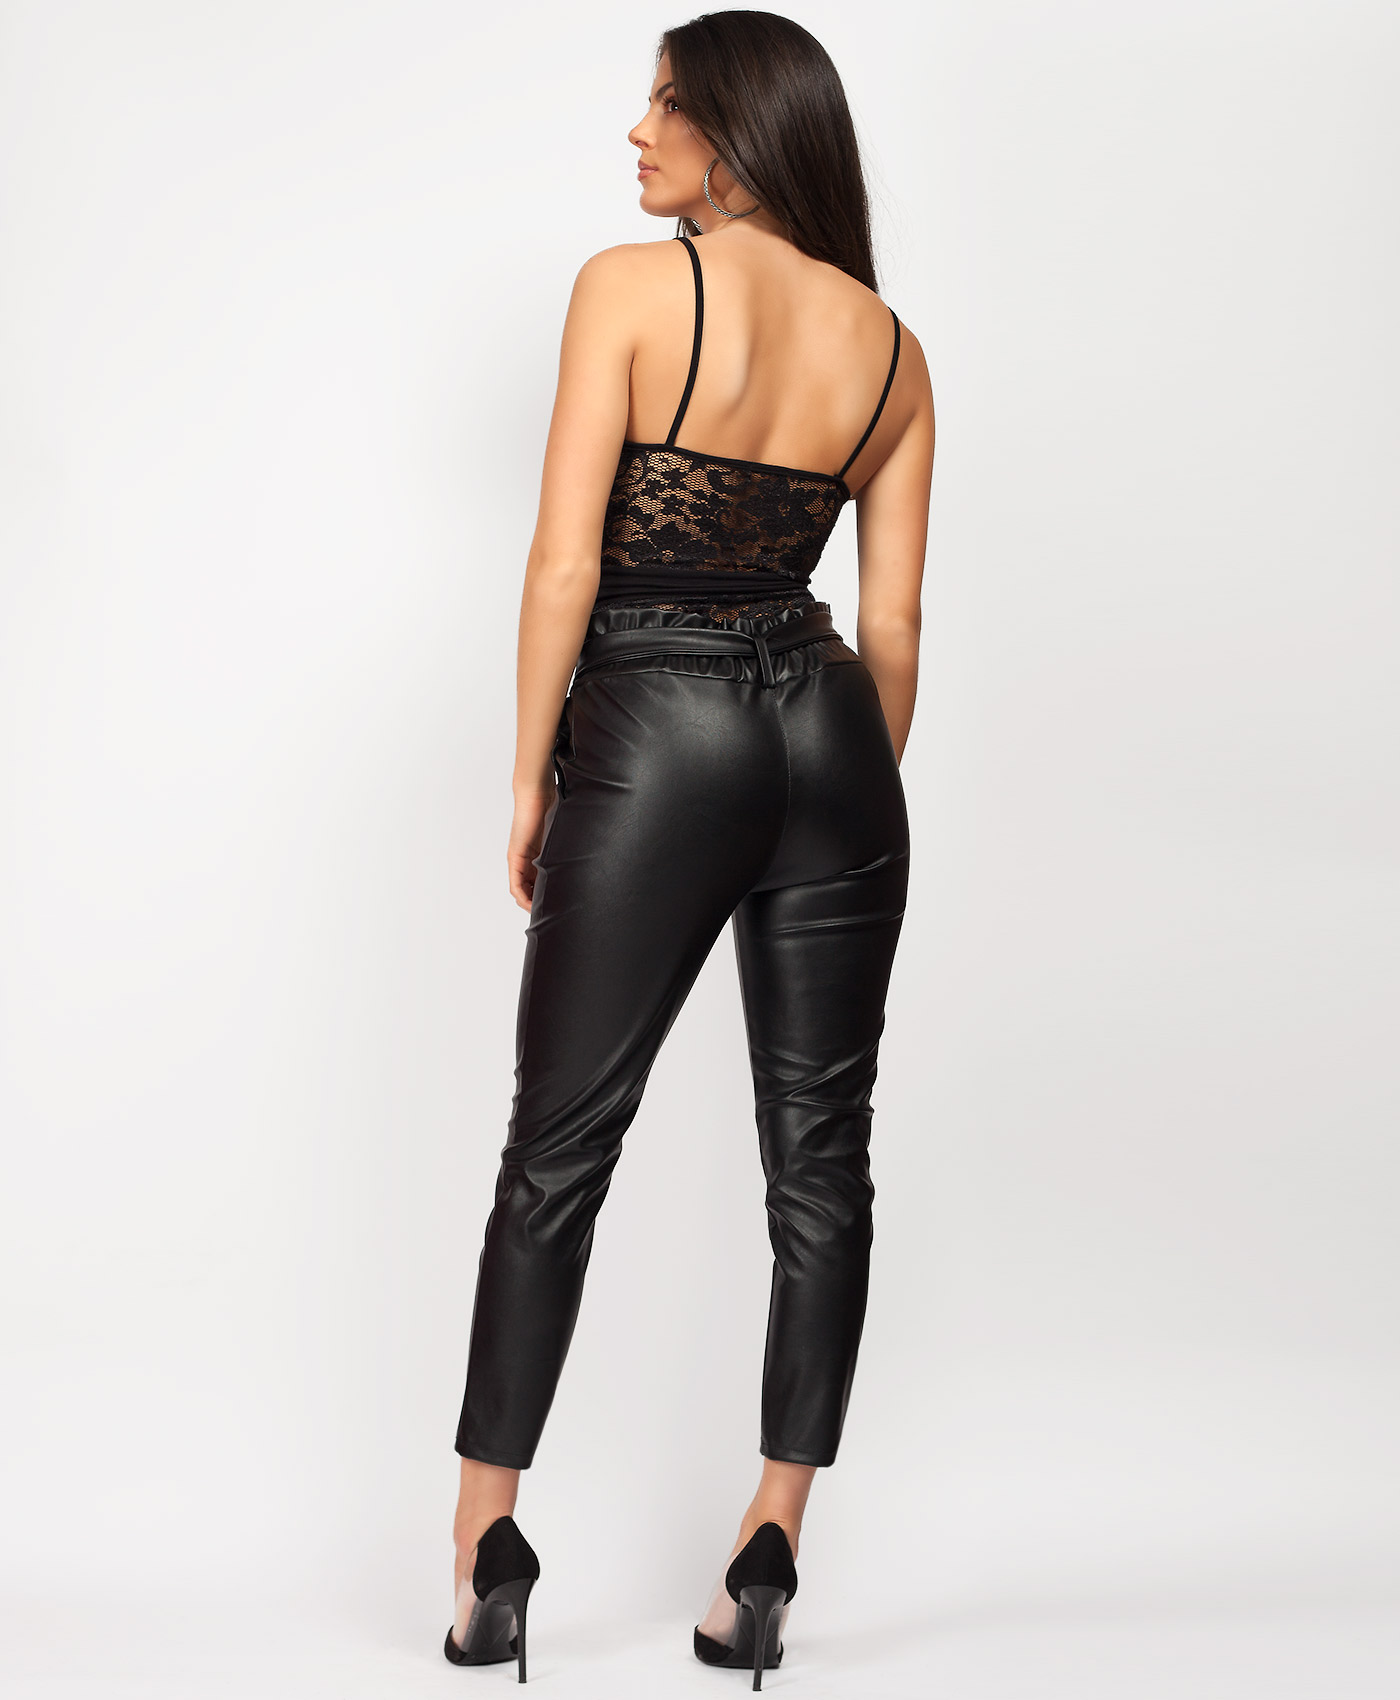 Women/'s Ladies Pvc Faux Leather High Waist Belted Paper Bag Trouser Pant